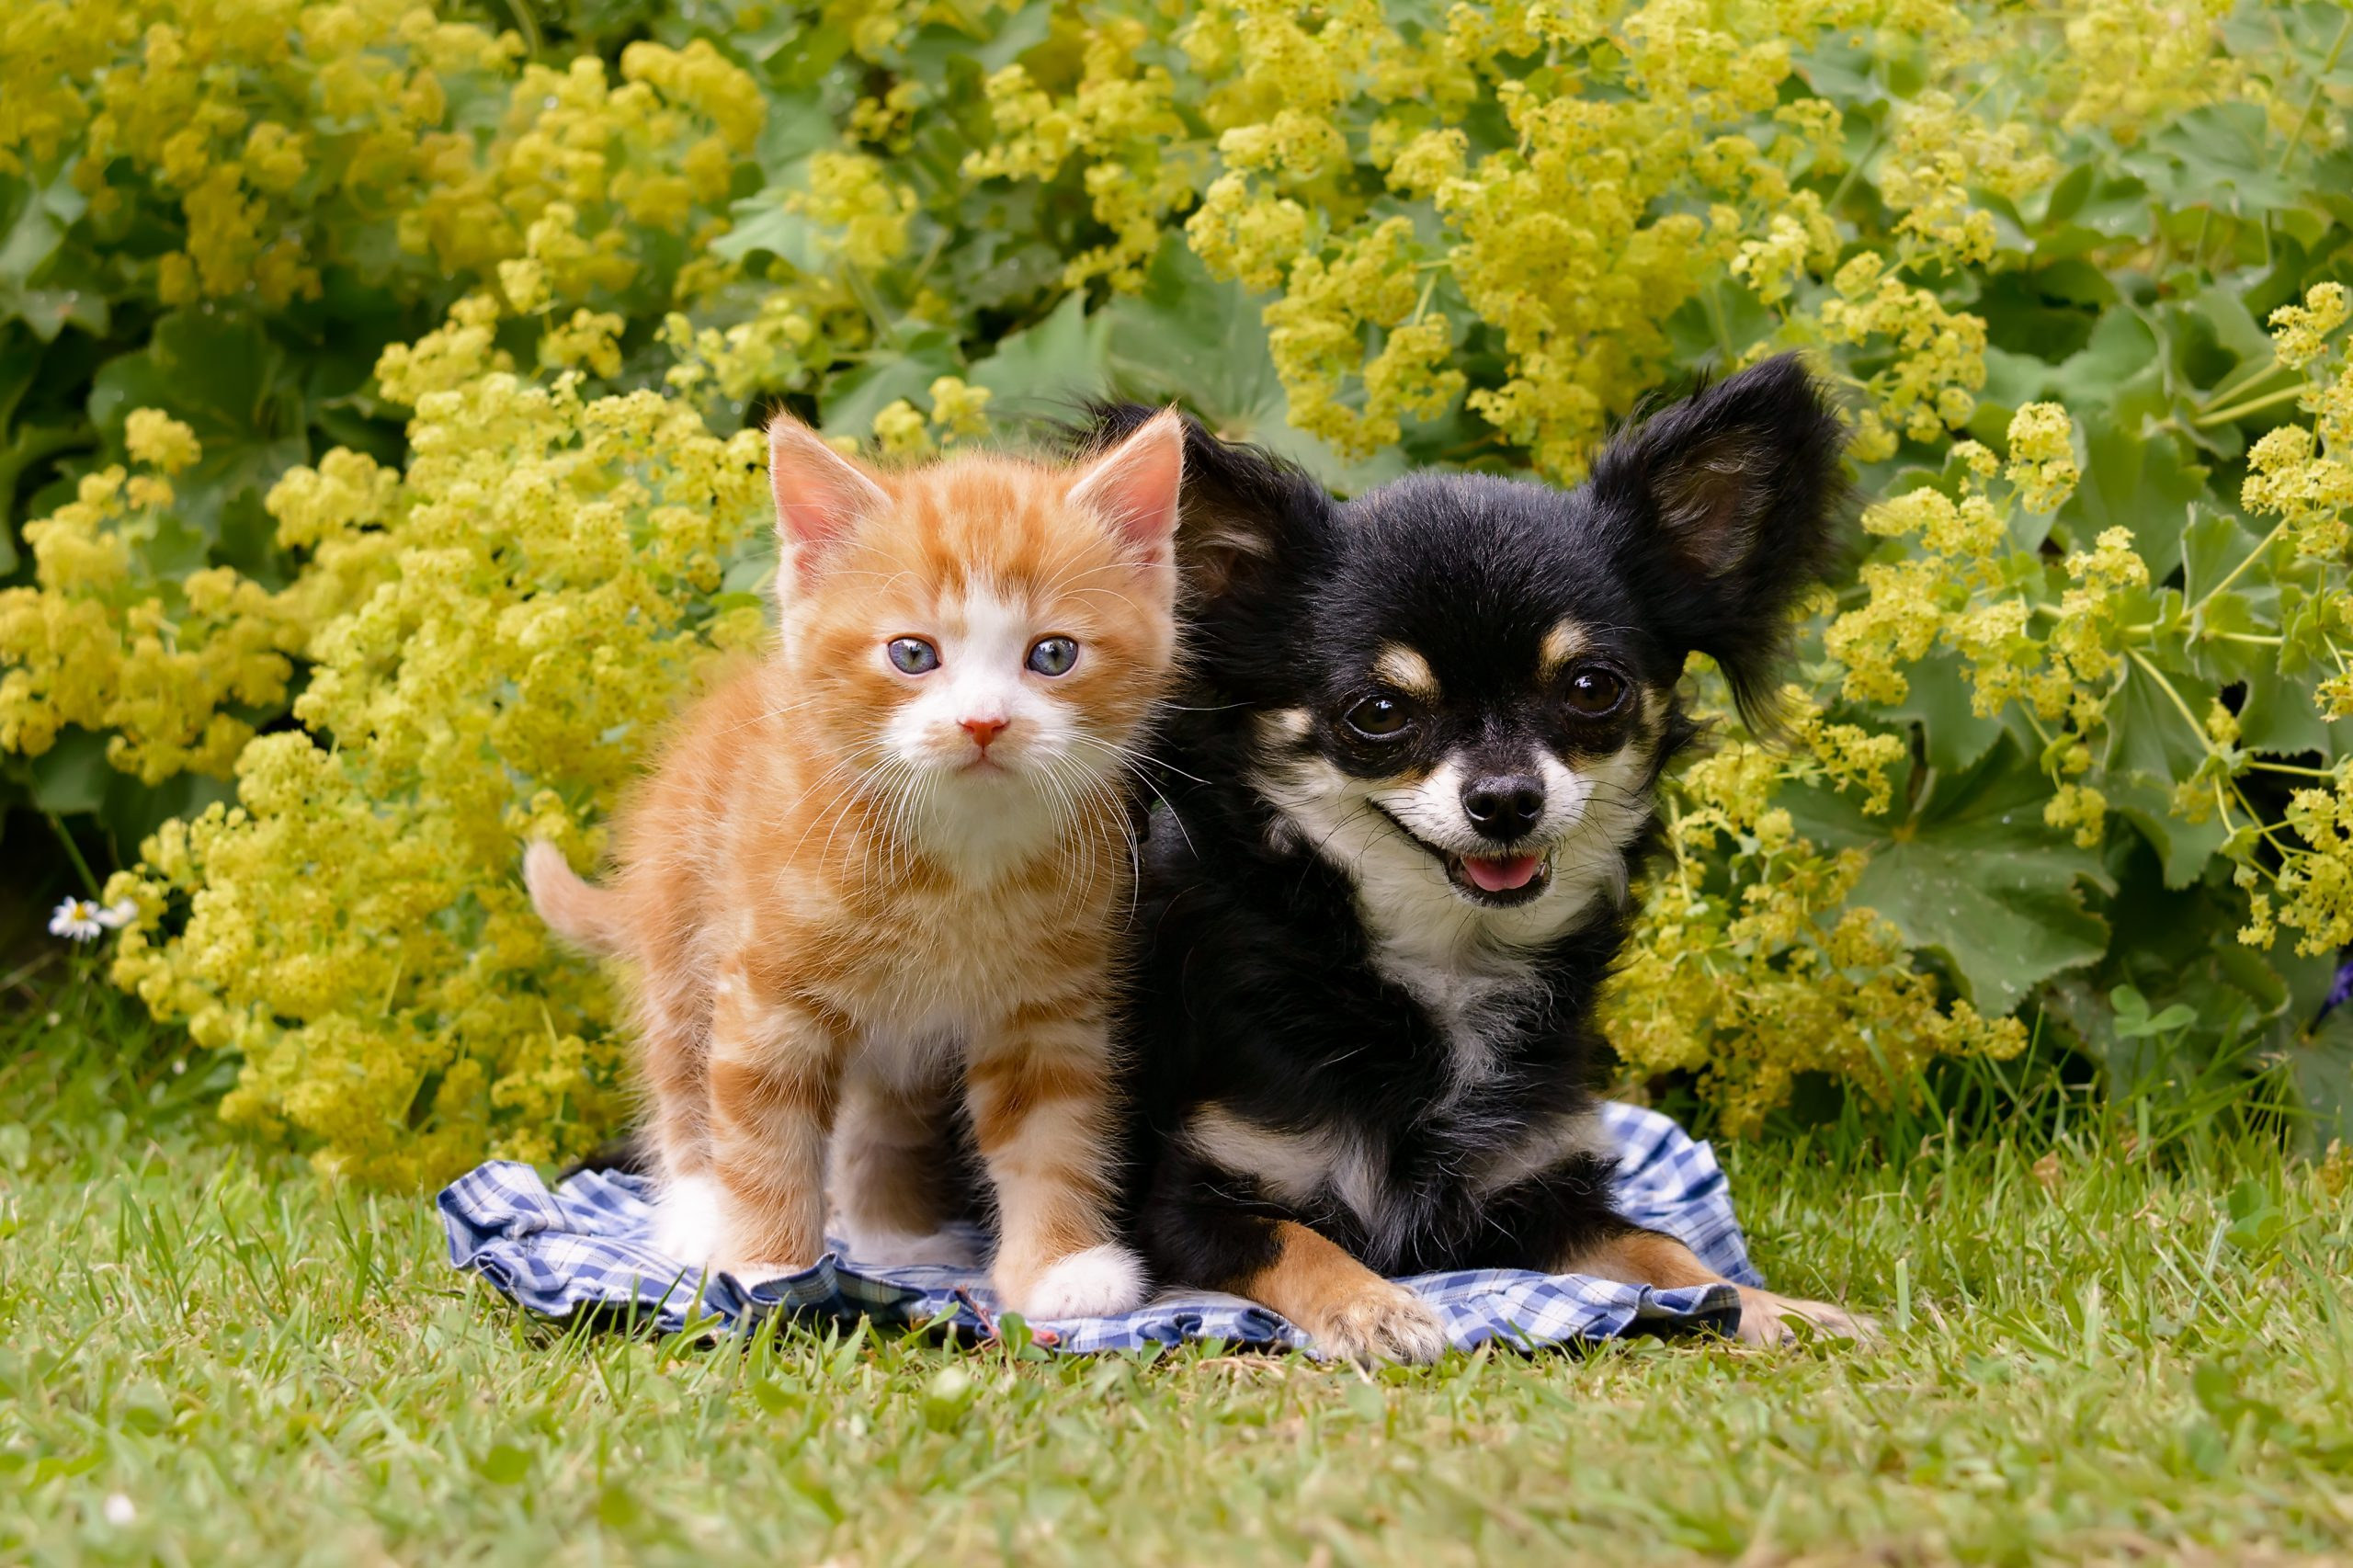 Portrait Of Kitten And Puppy On Grassy Field At Public Park